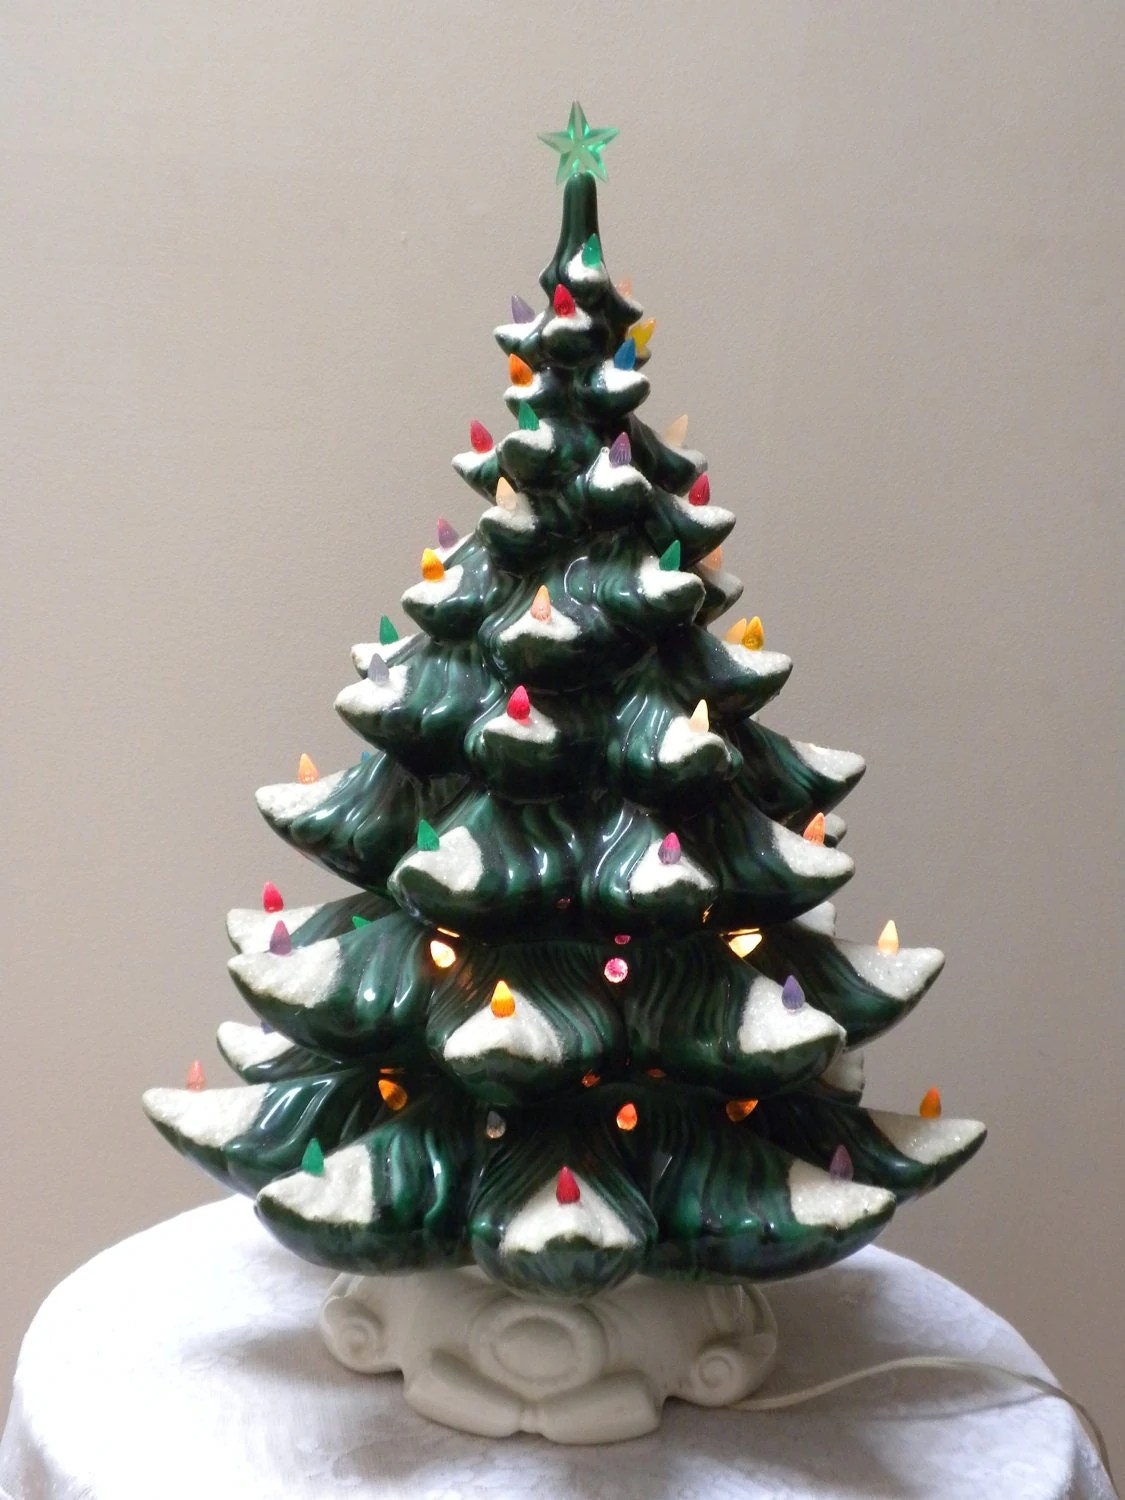 Vintage Ceramic Christmas Tree With Musical Box 22 Inches